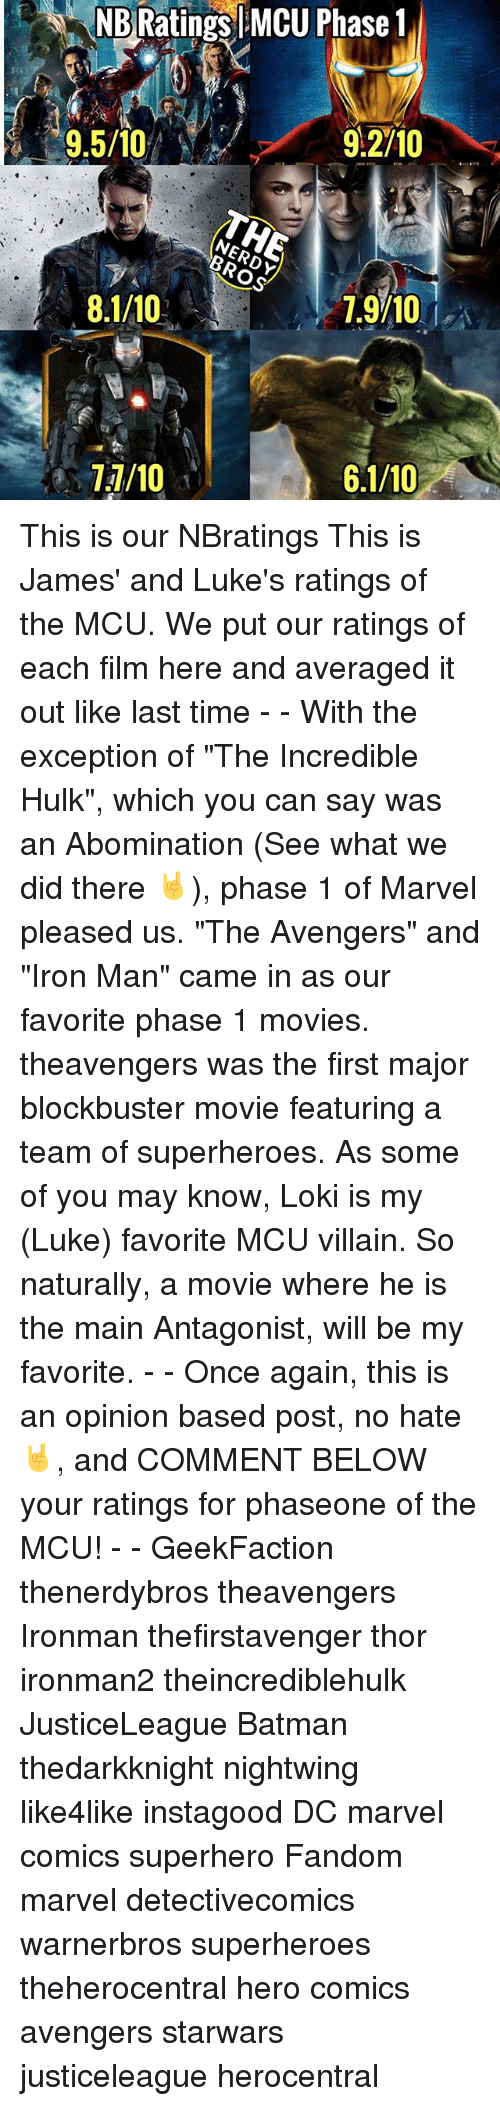 """incredible hulk: NB  Ratings  MCU  Phase  1  9,5/10O  9.5/10  9.2/10  I 7.9710  1.9/10  1,9/10 This is our NBratings This is James' and Luke's ratings of the MCU. We put our ratings of each film here and averaged it out like last time - - With the exception of """"The Incredible Hulk"""", which you can say was an Abomination (See what we did there 🤘), phase 1 of Marvel pleased us. """"The Avengers"""" and """"Iron Man"""" came in as our favorite phase 1 movies. theavengers was the first major blockbuster movie featuring a team of superheroes. As some of you may know, Loki is my (Luke) favorite MCU villain. So naturally, a movie where he is the main Antagonist, will be my favorite. - - Once again, this is an opinion based post, no hate 🤘, and COMMENT BELOW your ratings for phaseone of the MCU! - - GeekFaction thenerdybros theavengers Ironman thefirstavenger thor ironman2 theincrediblehulk JusticeLeague Batman thedarkknight nightwing like4like instagood DC marvel comics superhero Fandom marvel detectivecomics warnerbros superheroes theherocentral hero comics avengers starwars justiceleague herocentral"""